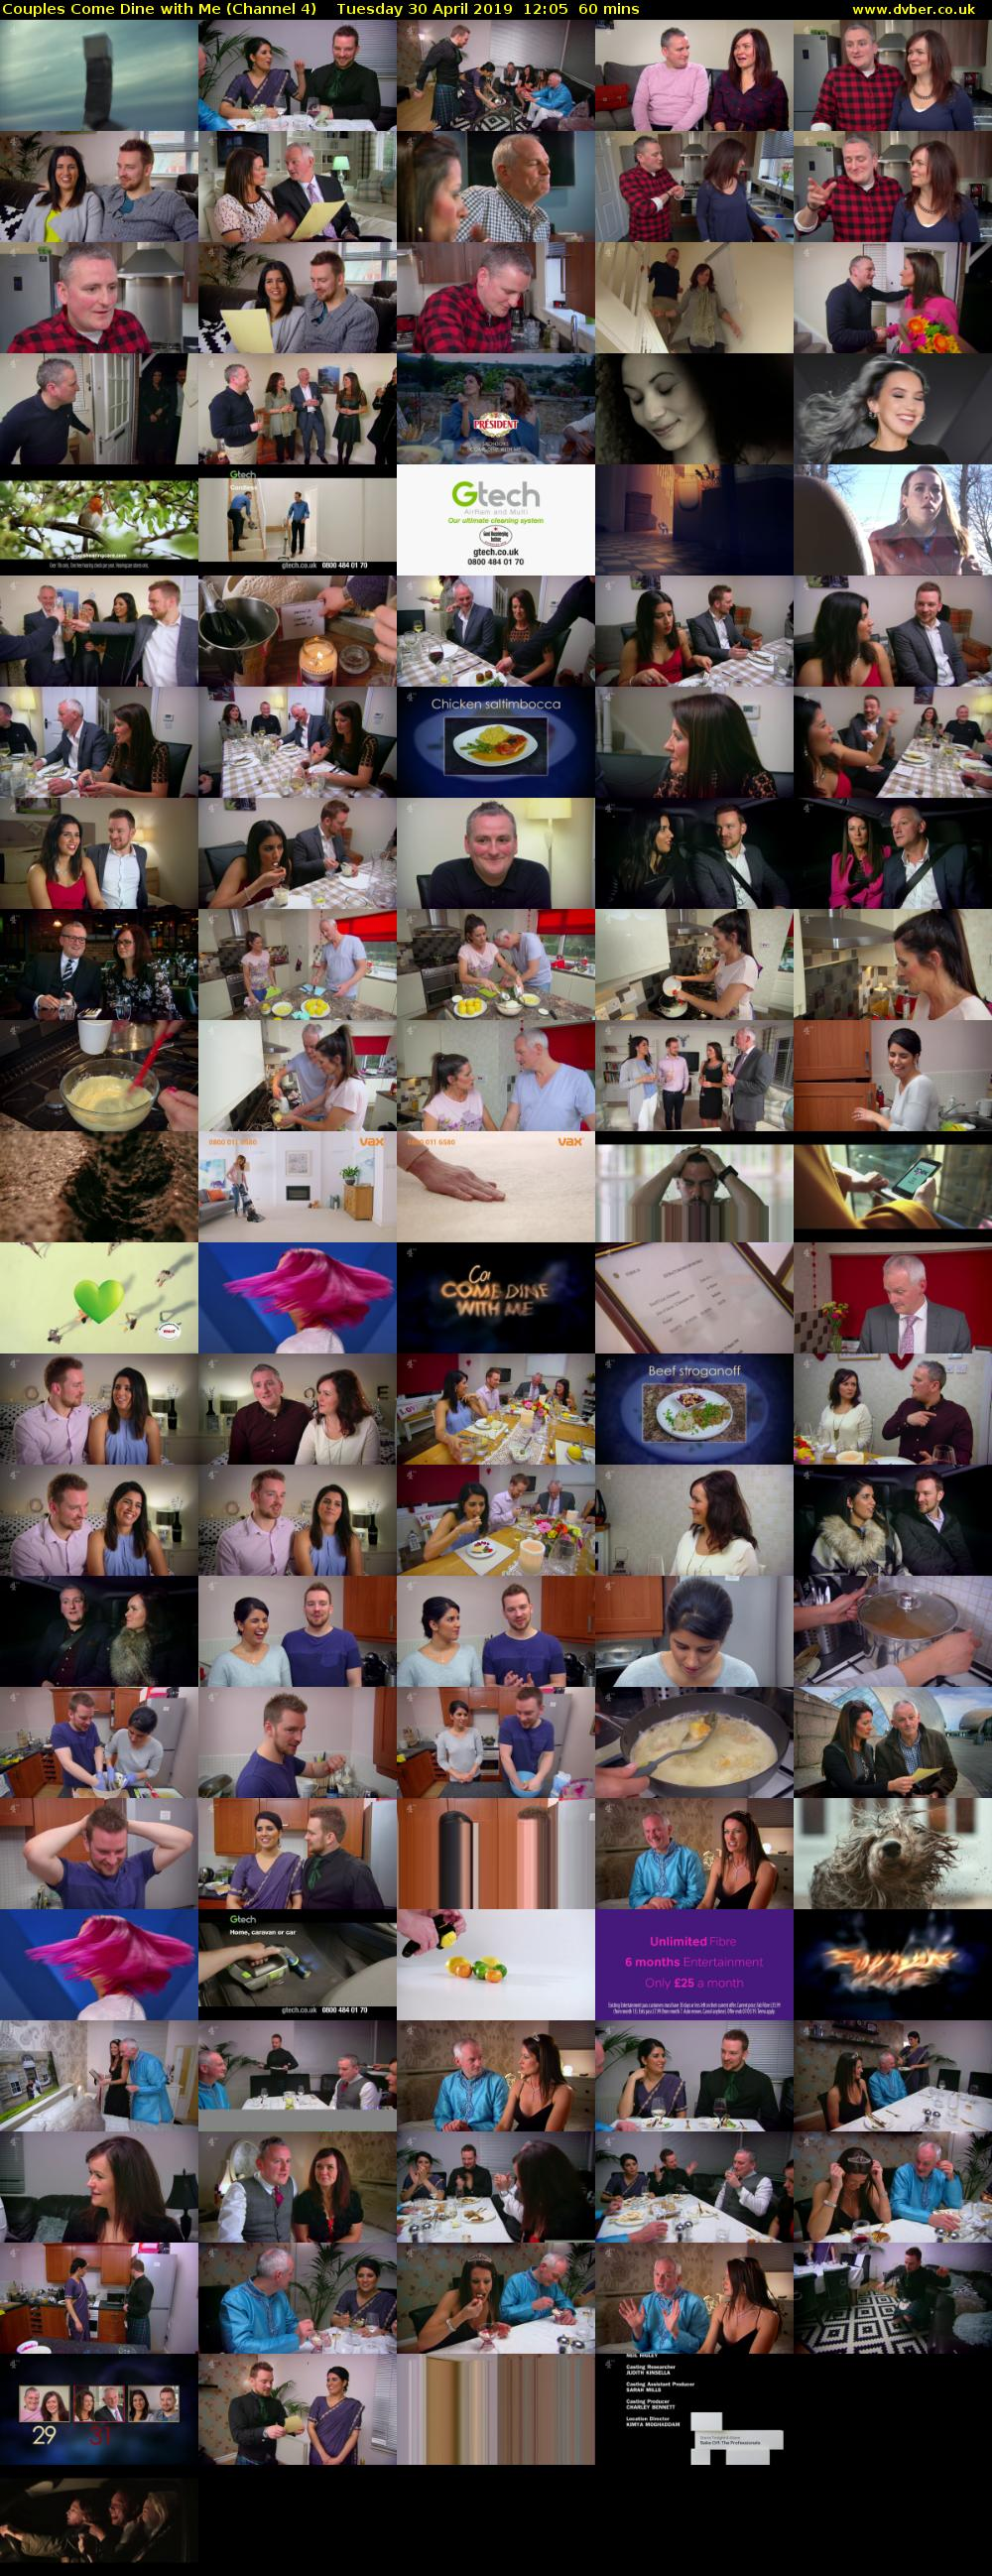 Couples Come Dine with Me (Channel 4) Tuesday 30 April 2019 12:05 - 13:05